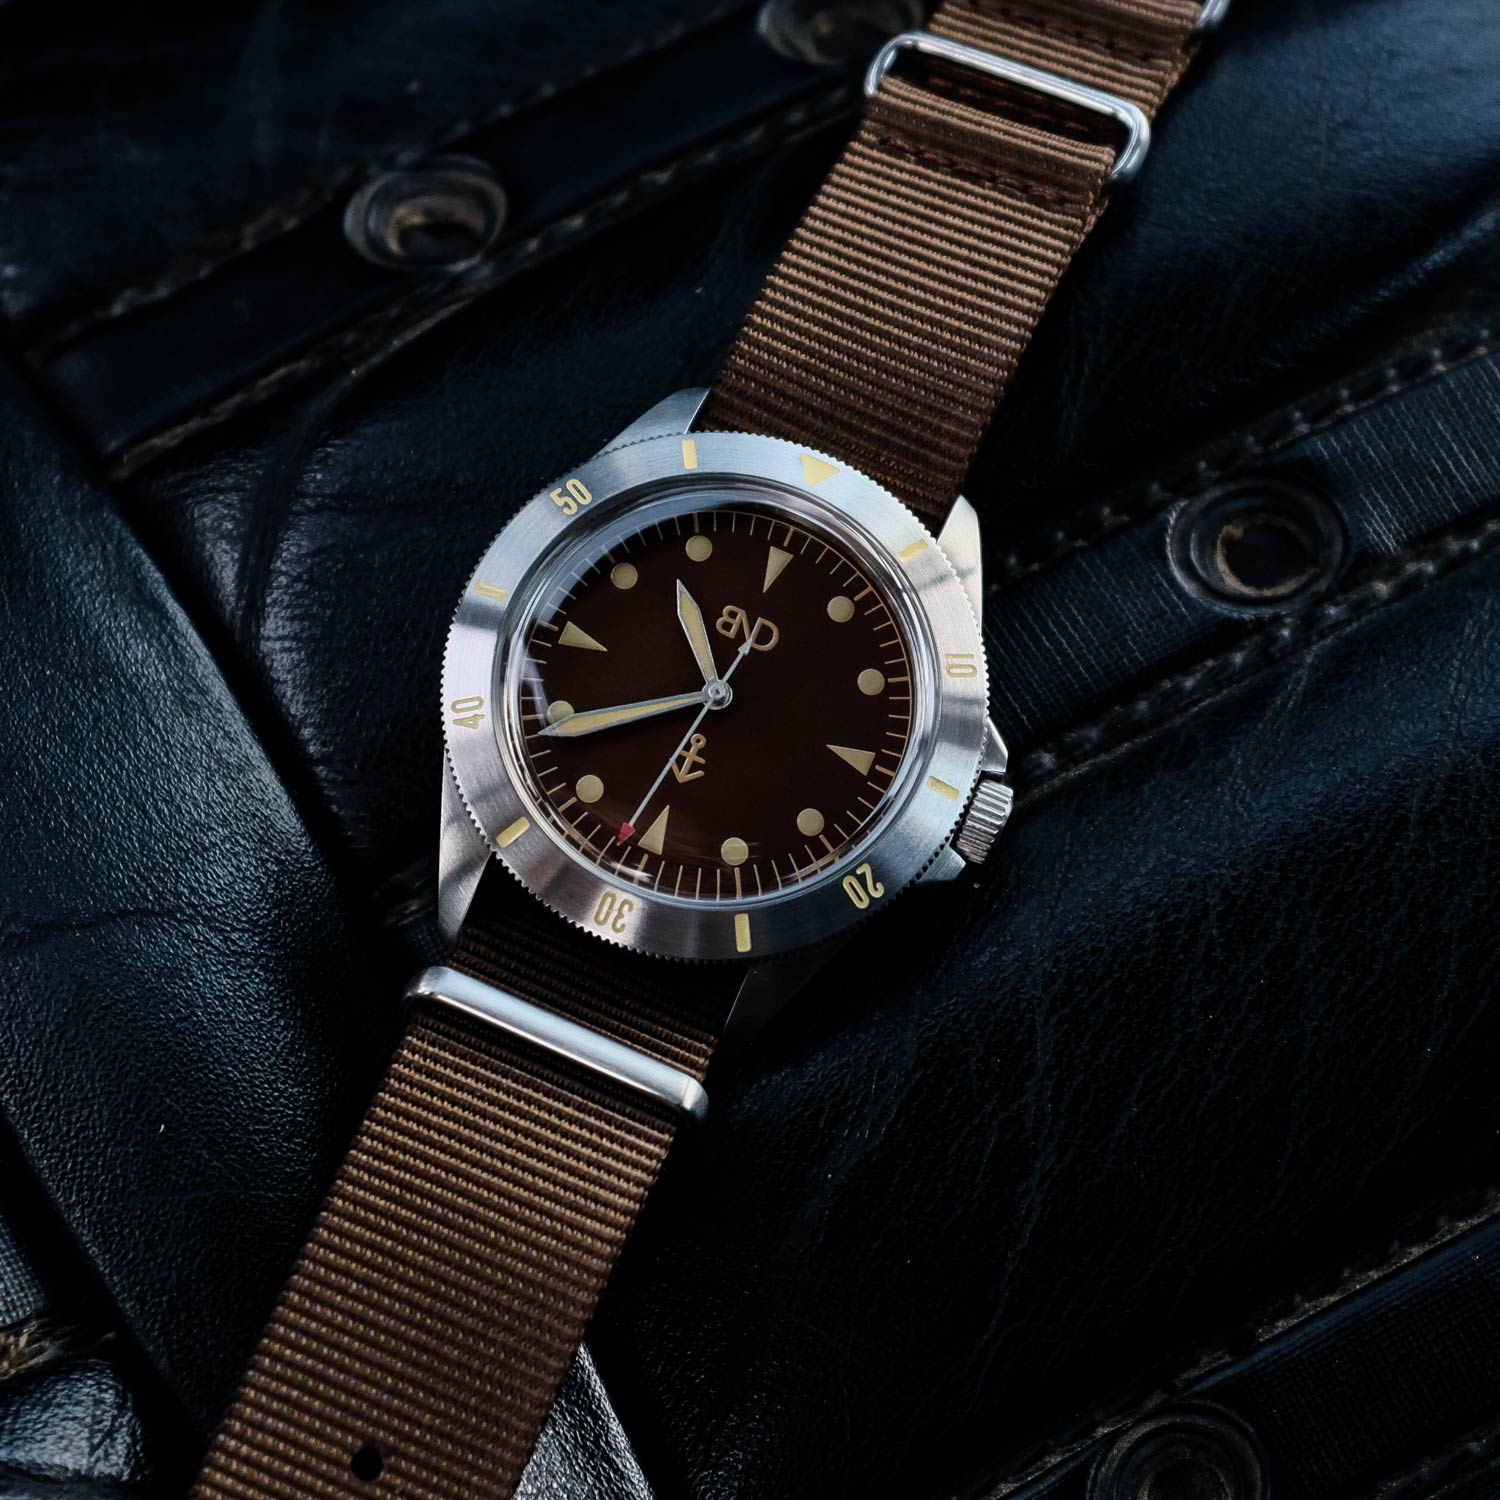 The unidirectional bezel has the same luminous in-fill, which is in the brushed steel bezel insert.